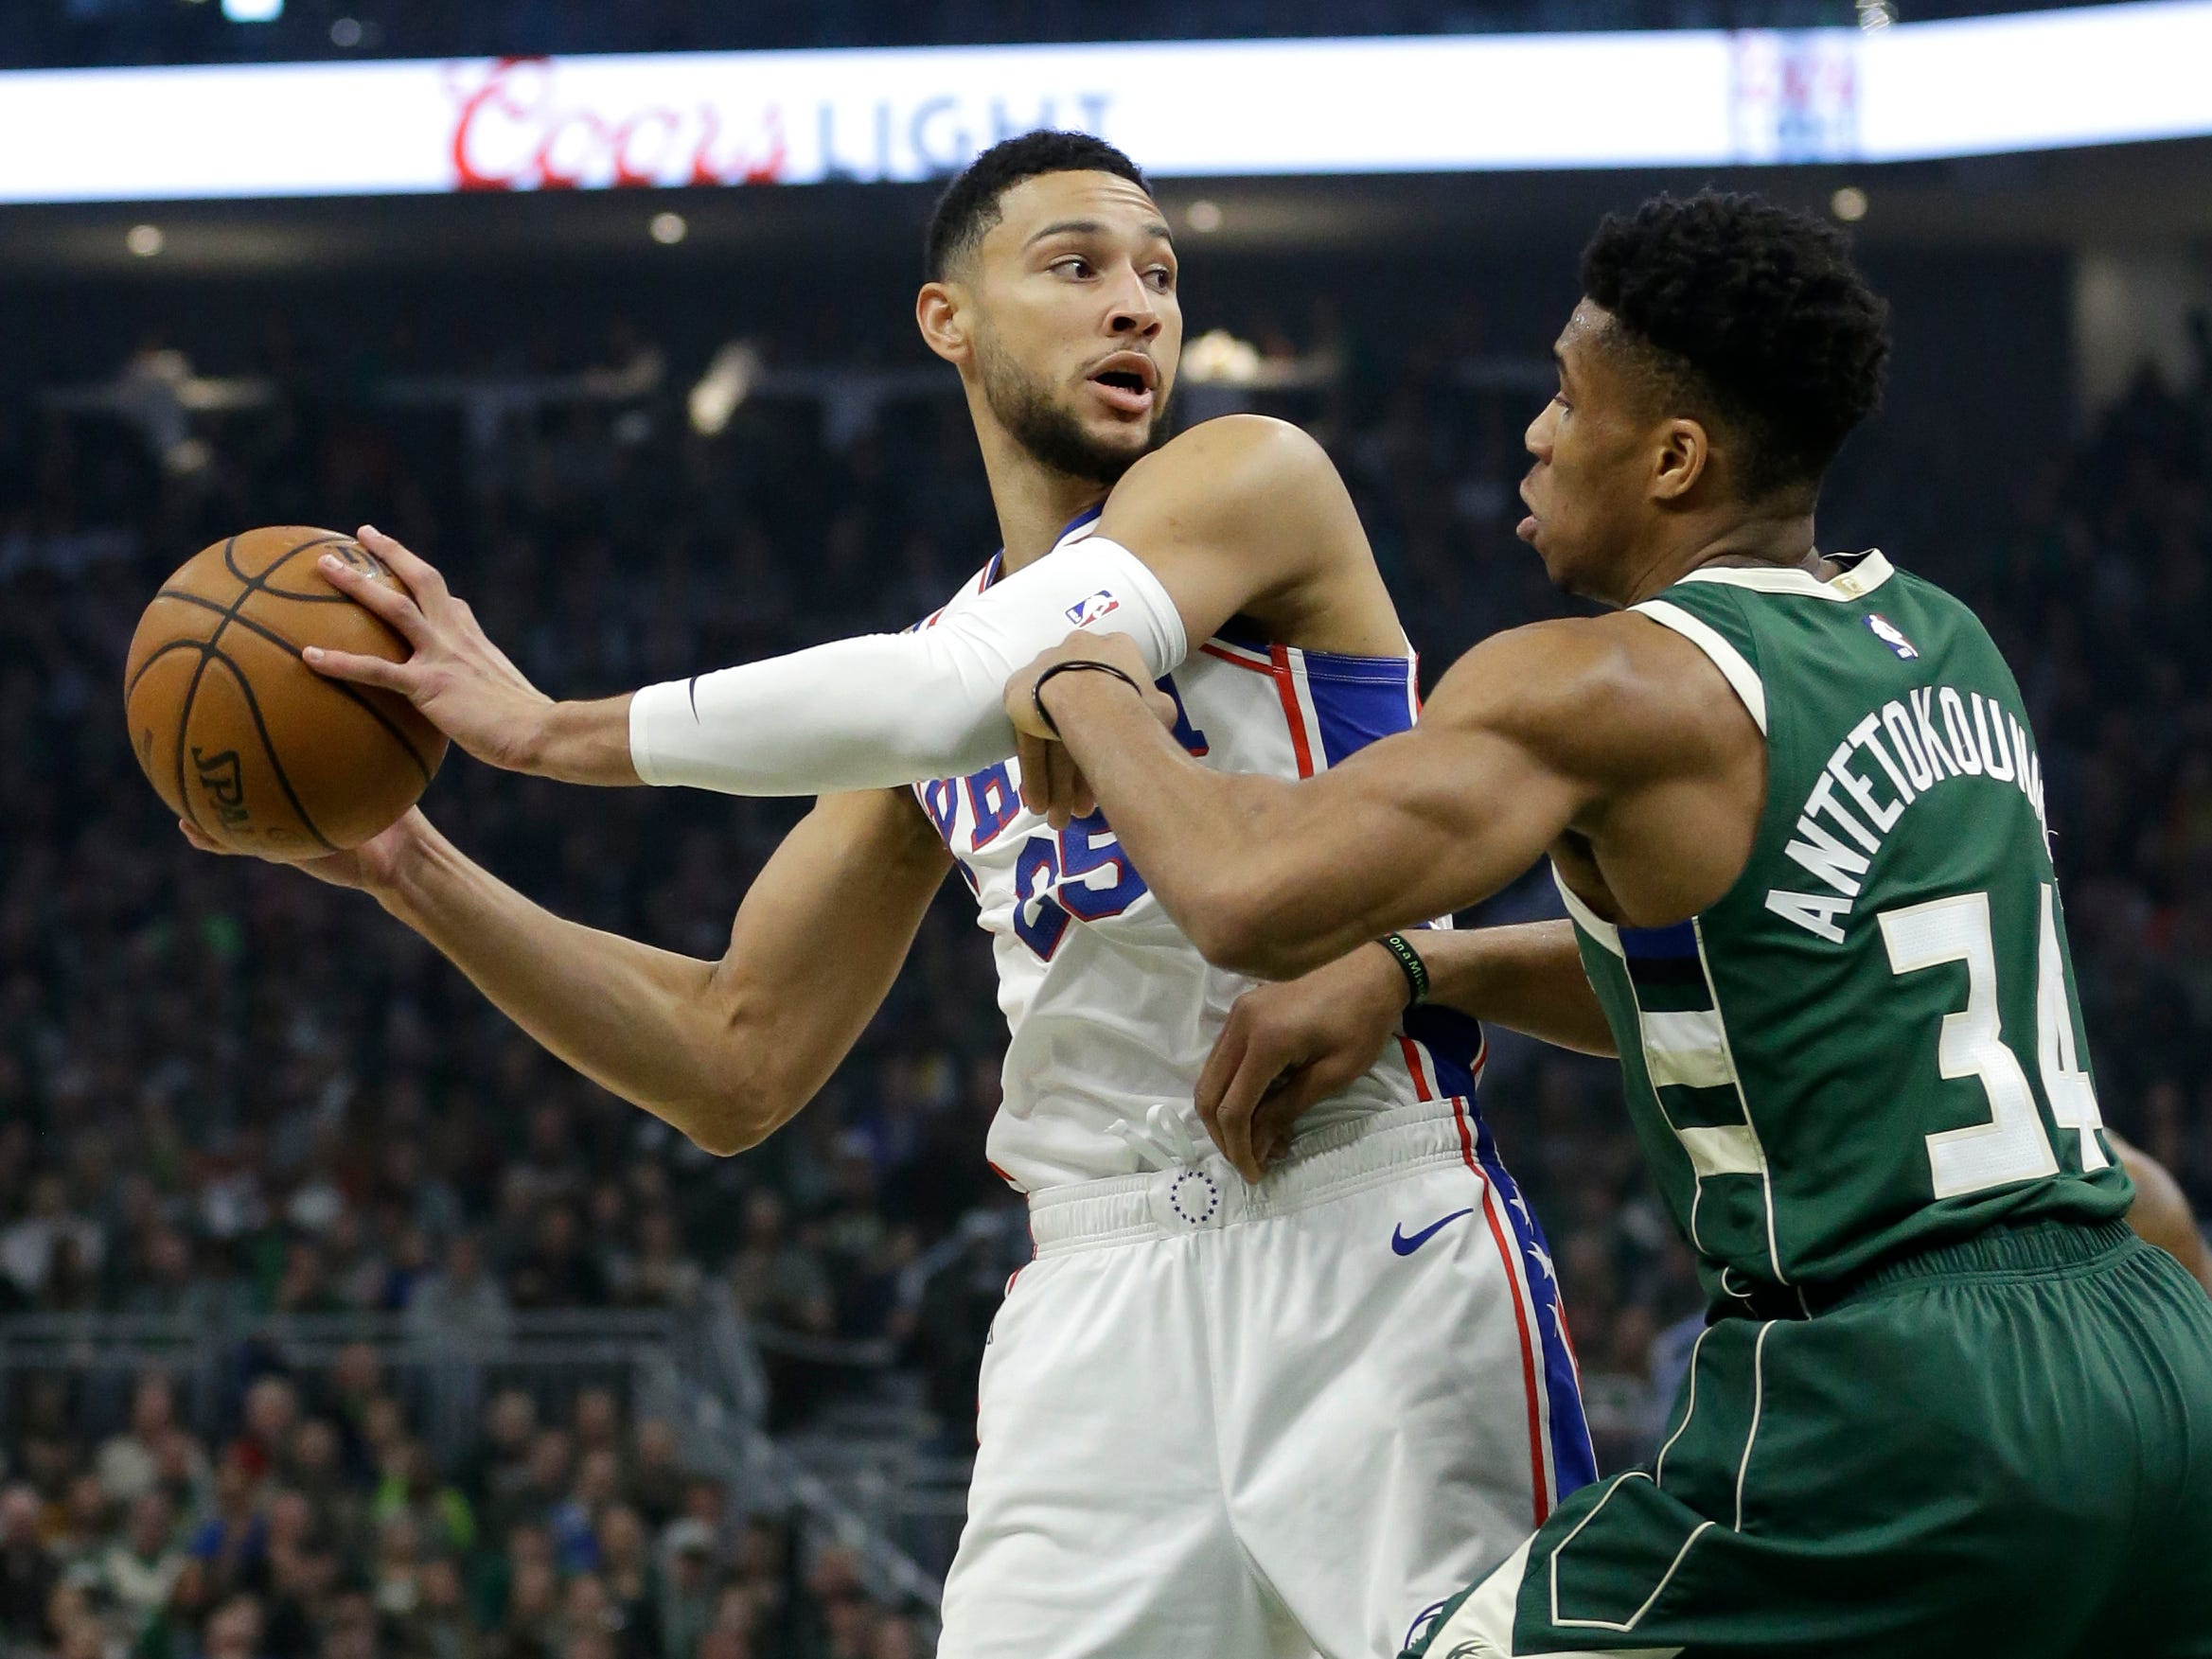 76ers guard Ben Simmons looks for a teammate to pass to while being guarded by Giannis Antetokounmpo of the Bucks during the first half Sunday.